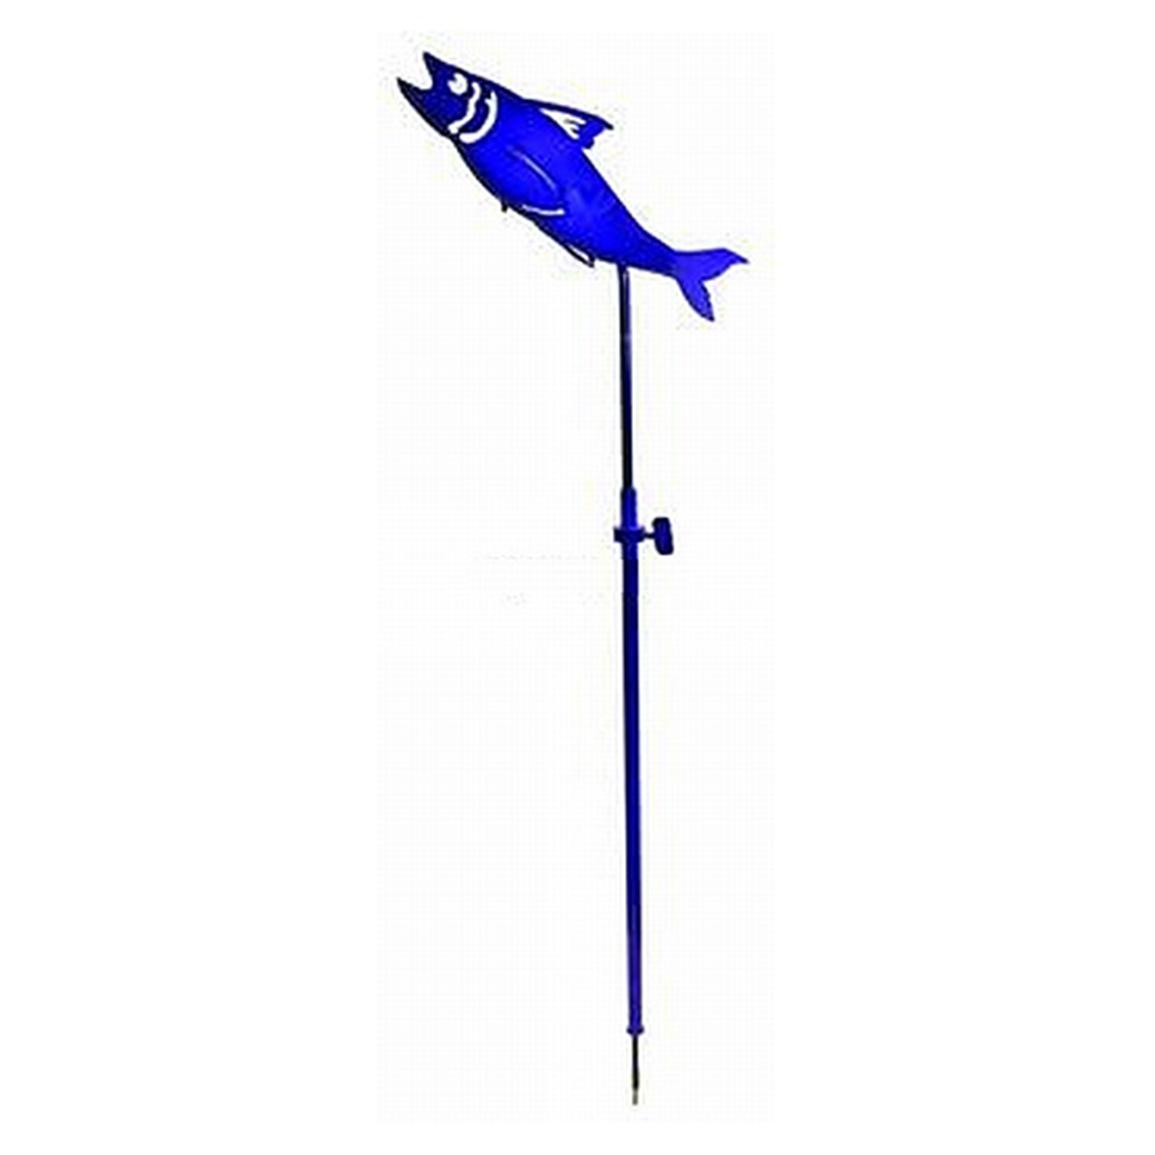 Fishmor rod holder 582020 ice fishing gear at for Ice fishing gear list